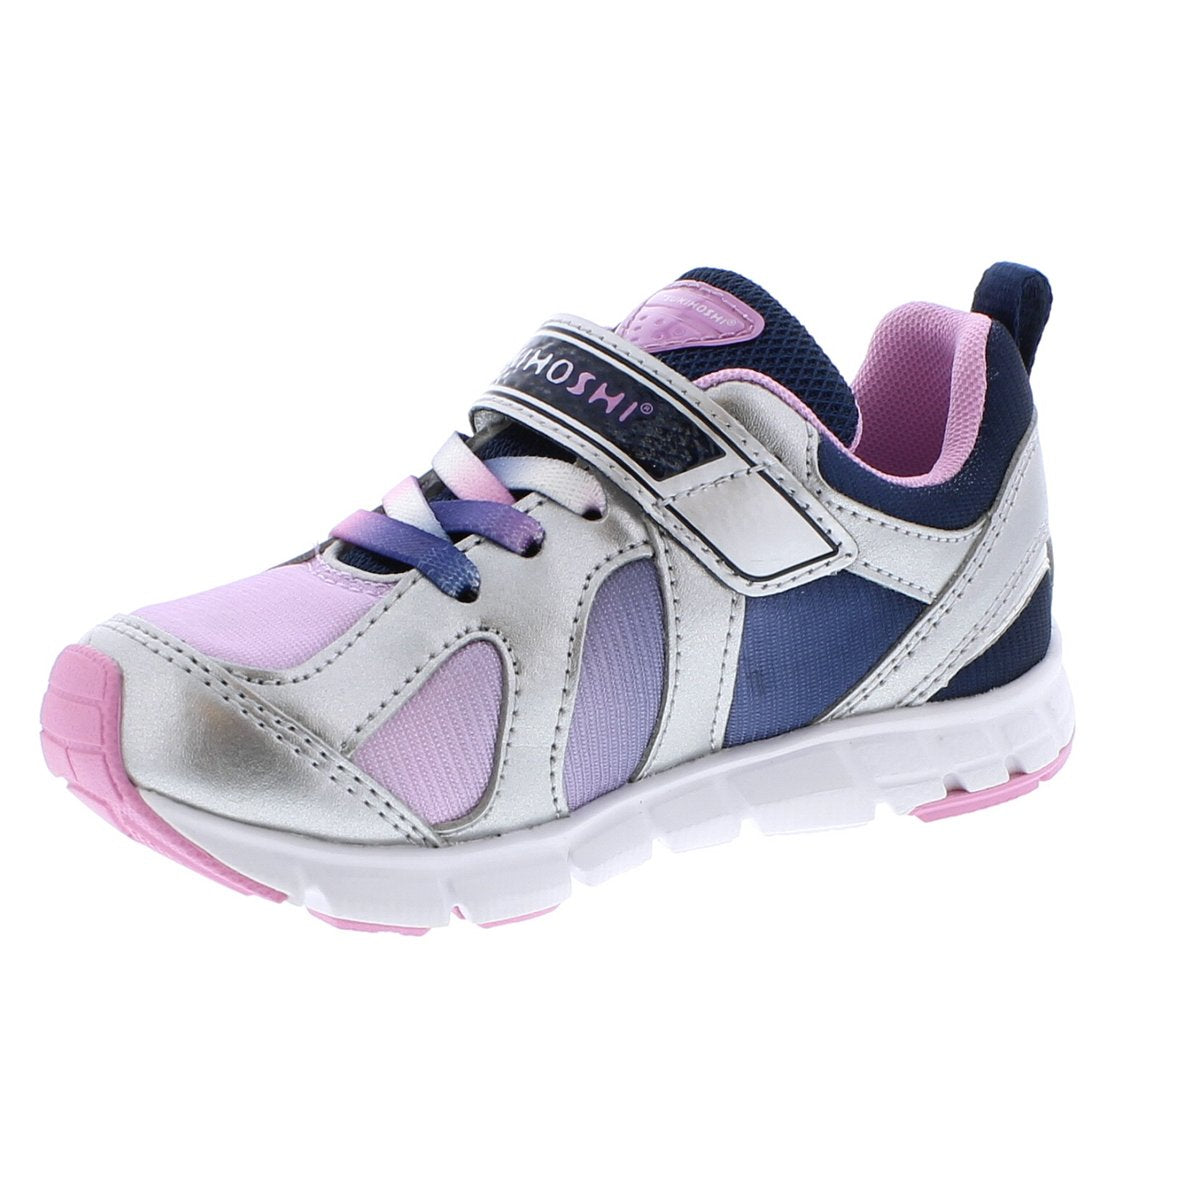 Child Tsukihoshi Rainbow Sneaker in Silver/Navy from the front view